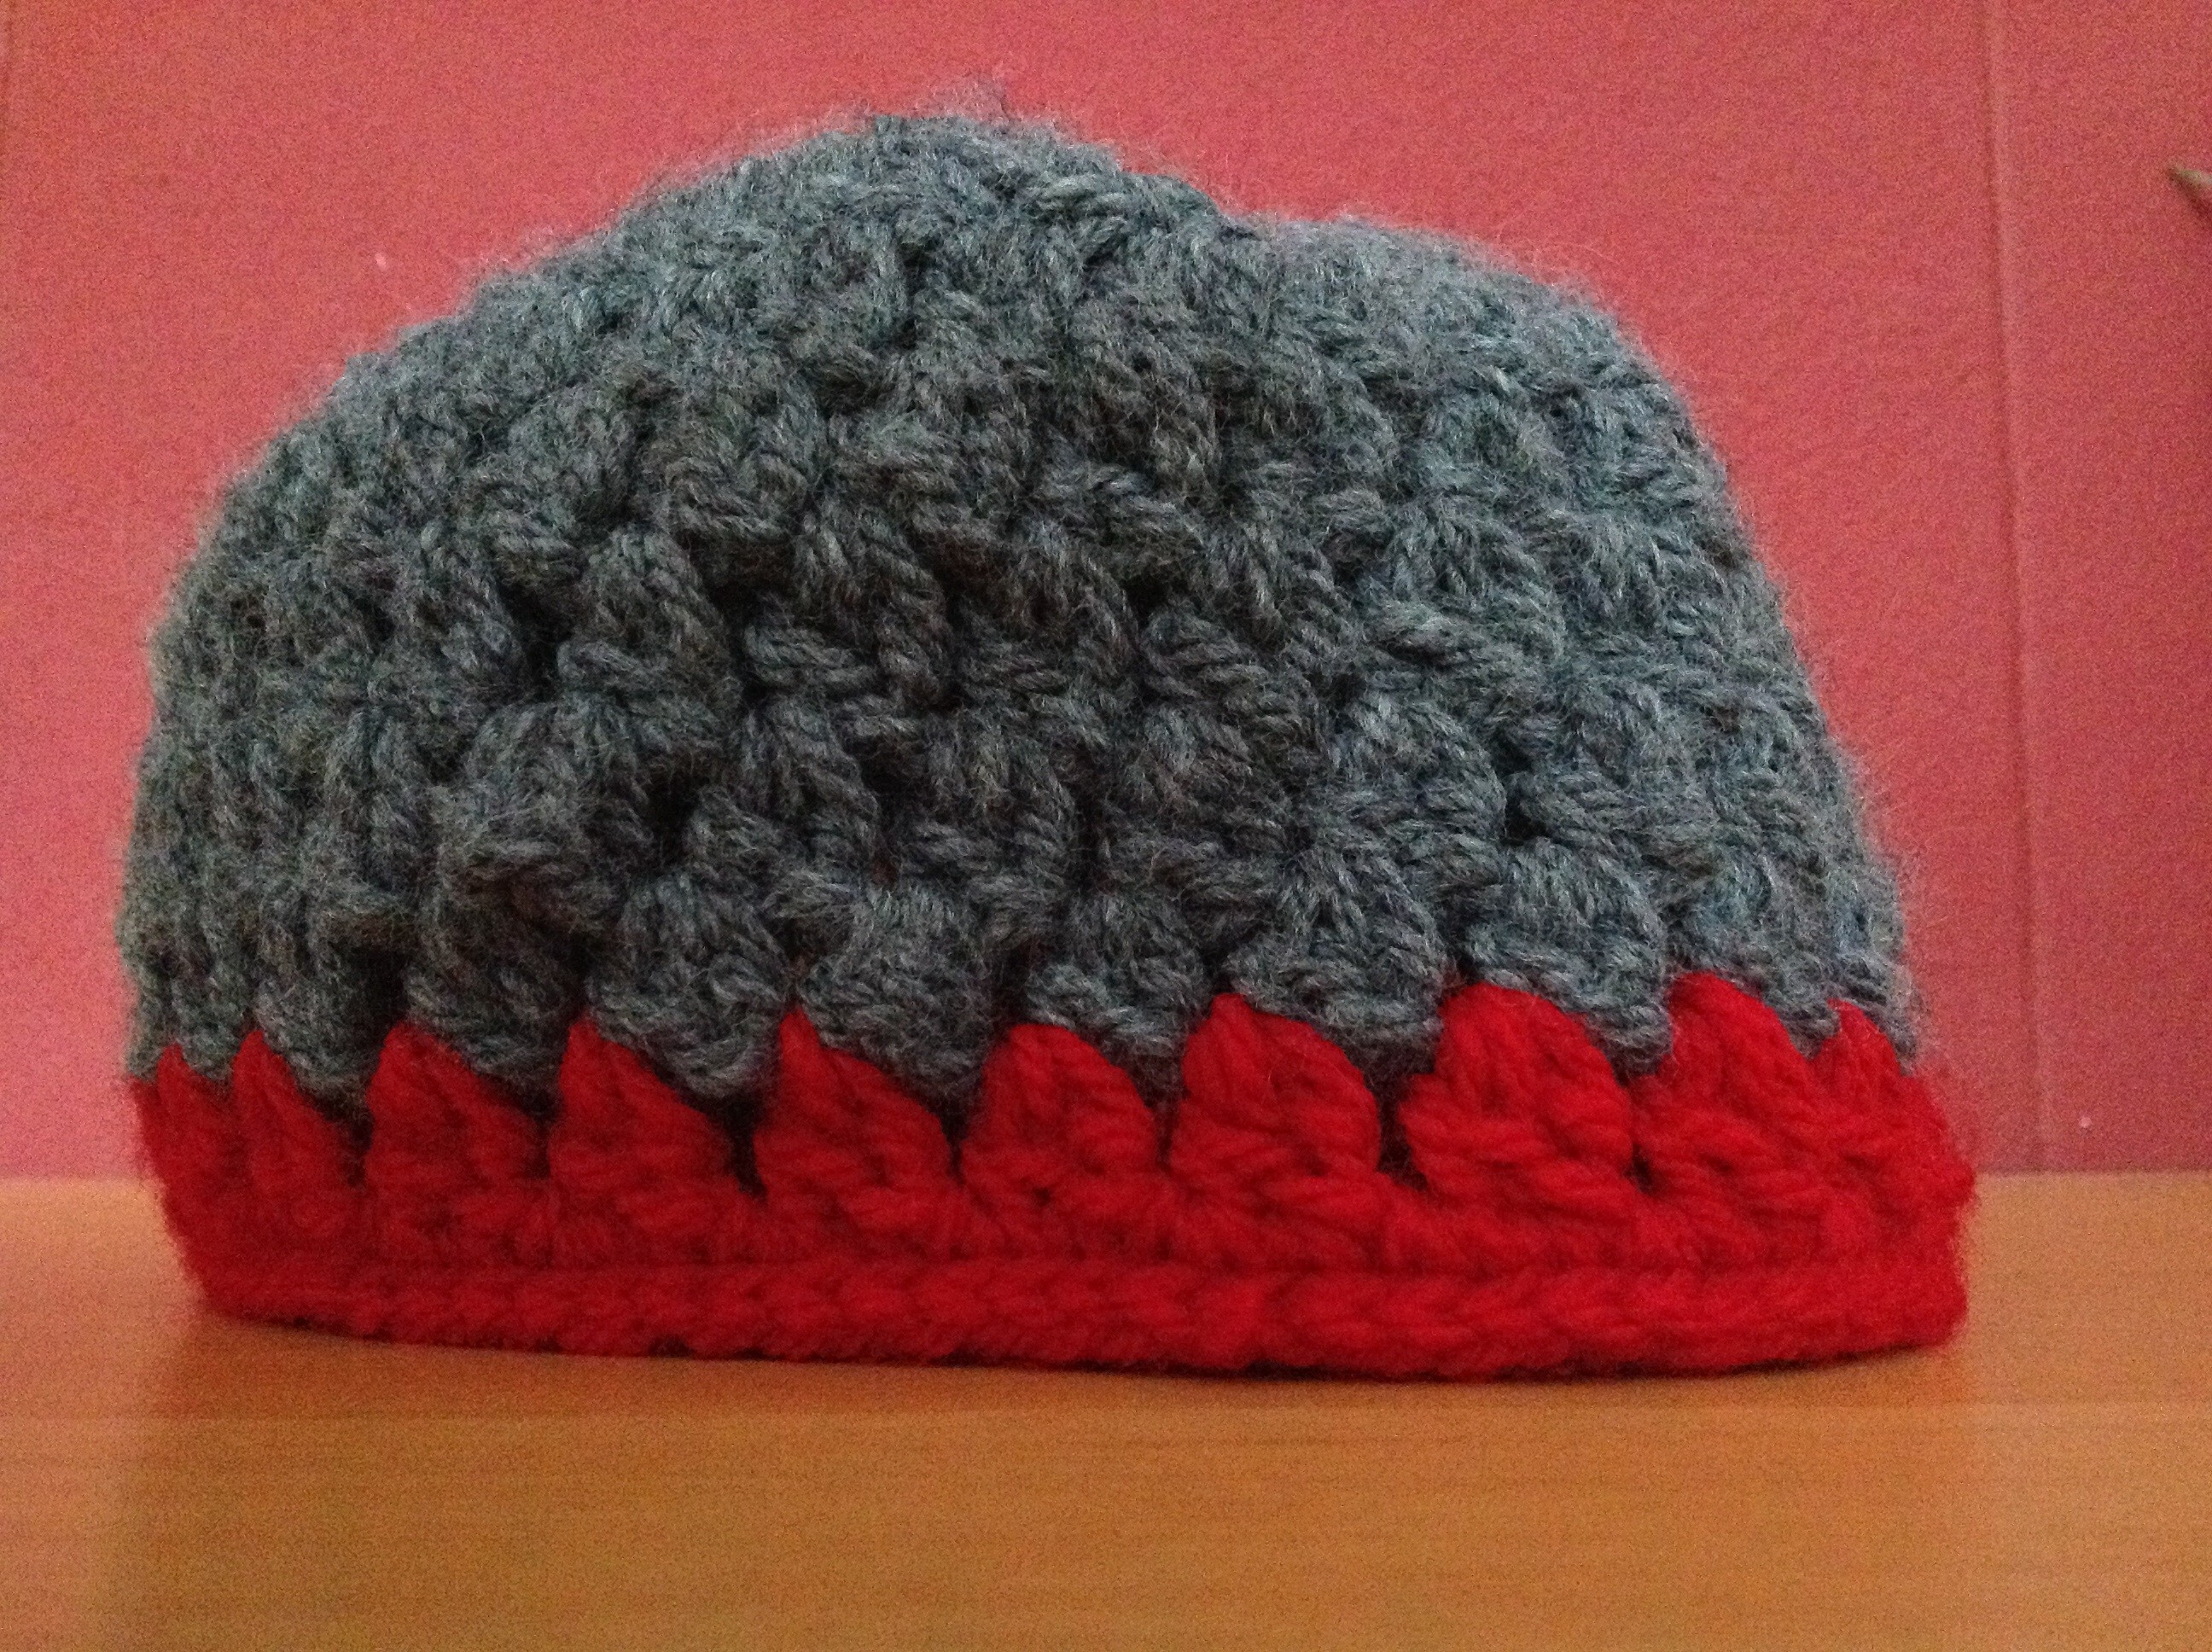 Crochet Project: The Hat